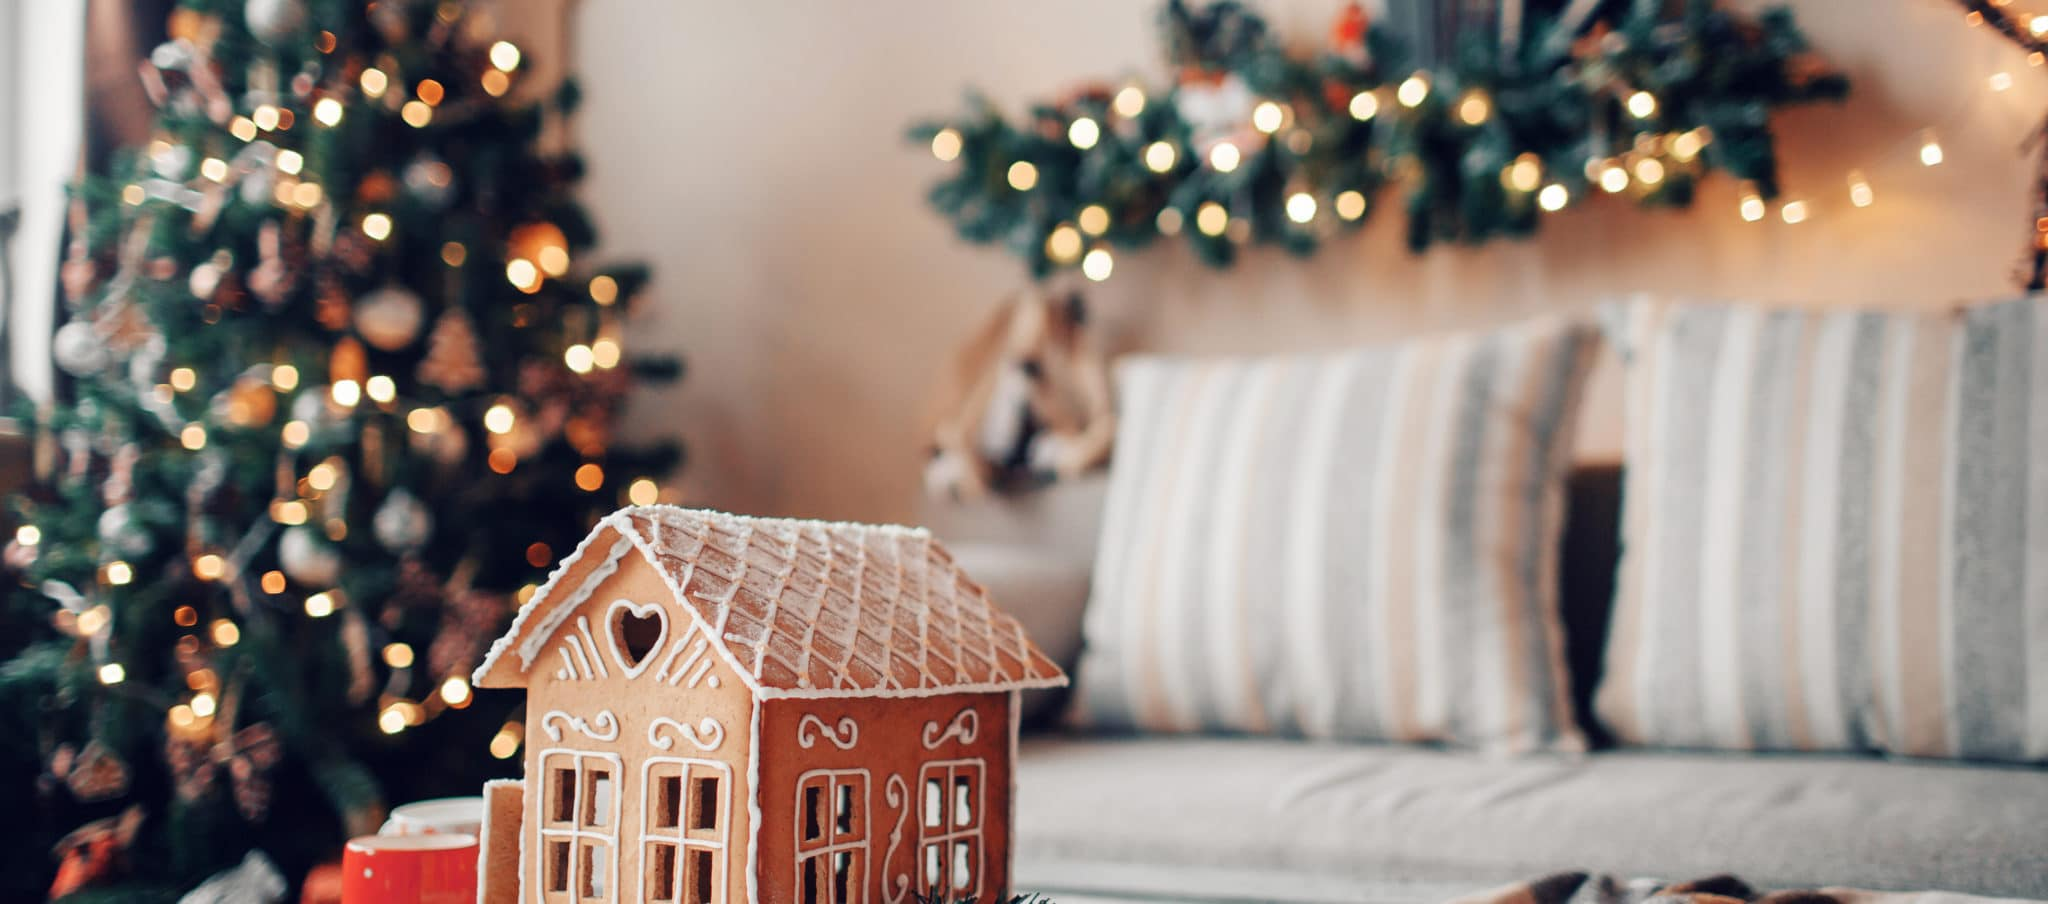 Homemade gingerbread house on light room background